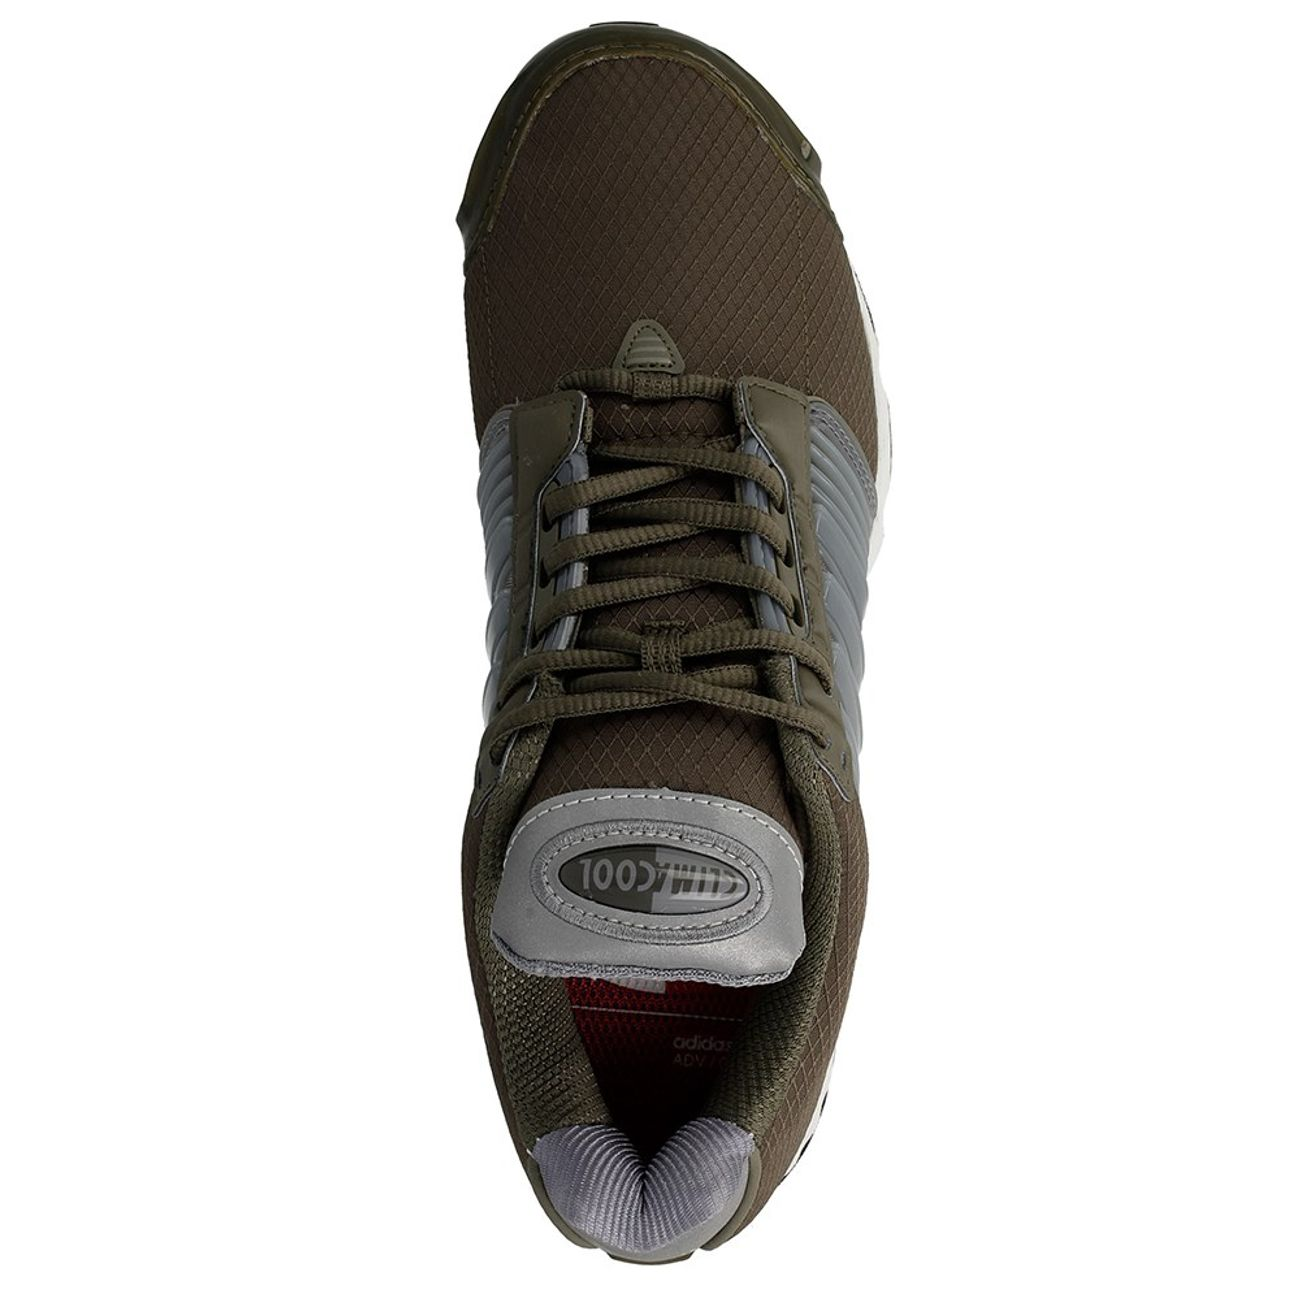 Homme 1 Homme Climacool Homme Adidas Adidas Climacool 1 Climacool Adidas zGVqMpLUjS